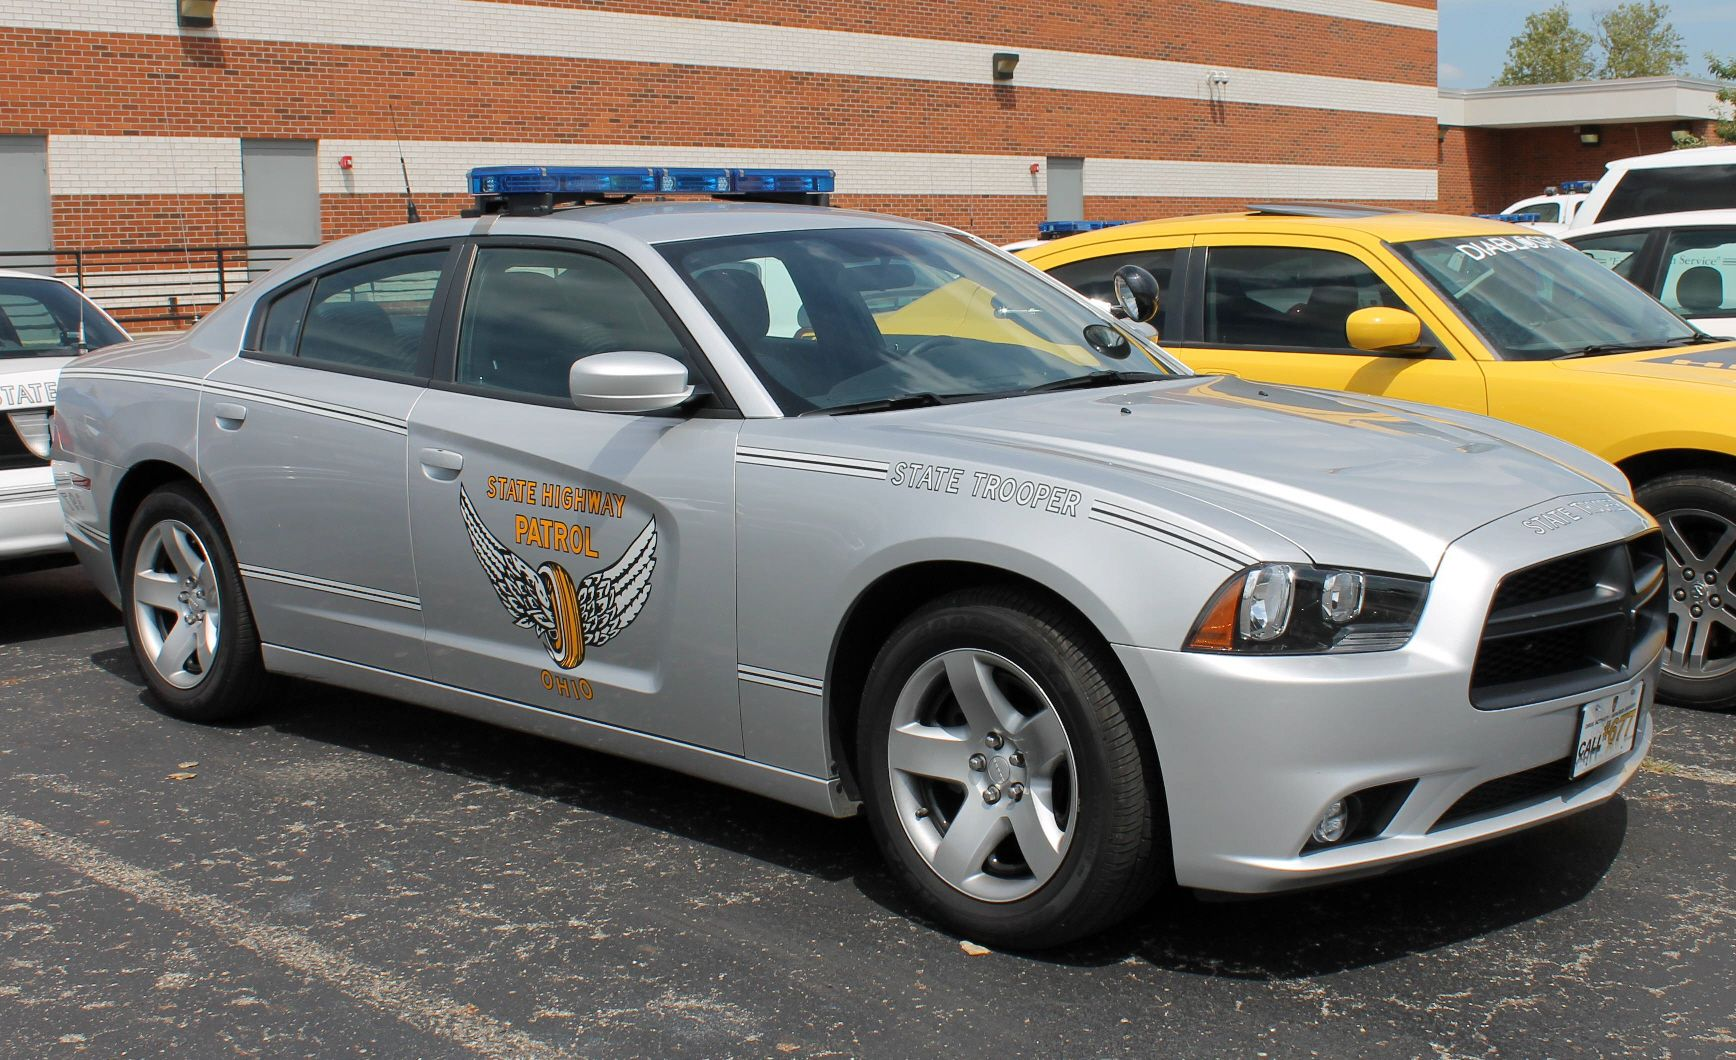 2012 Dodge Charger Police Interceptor - Ohio USA